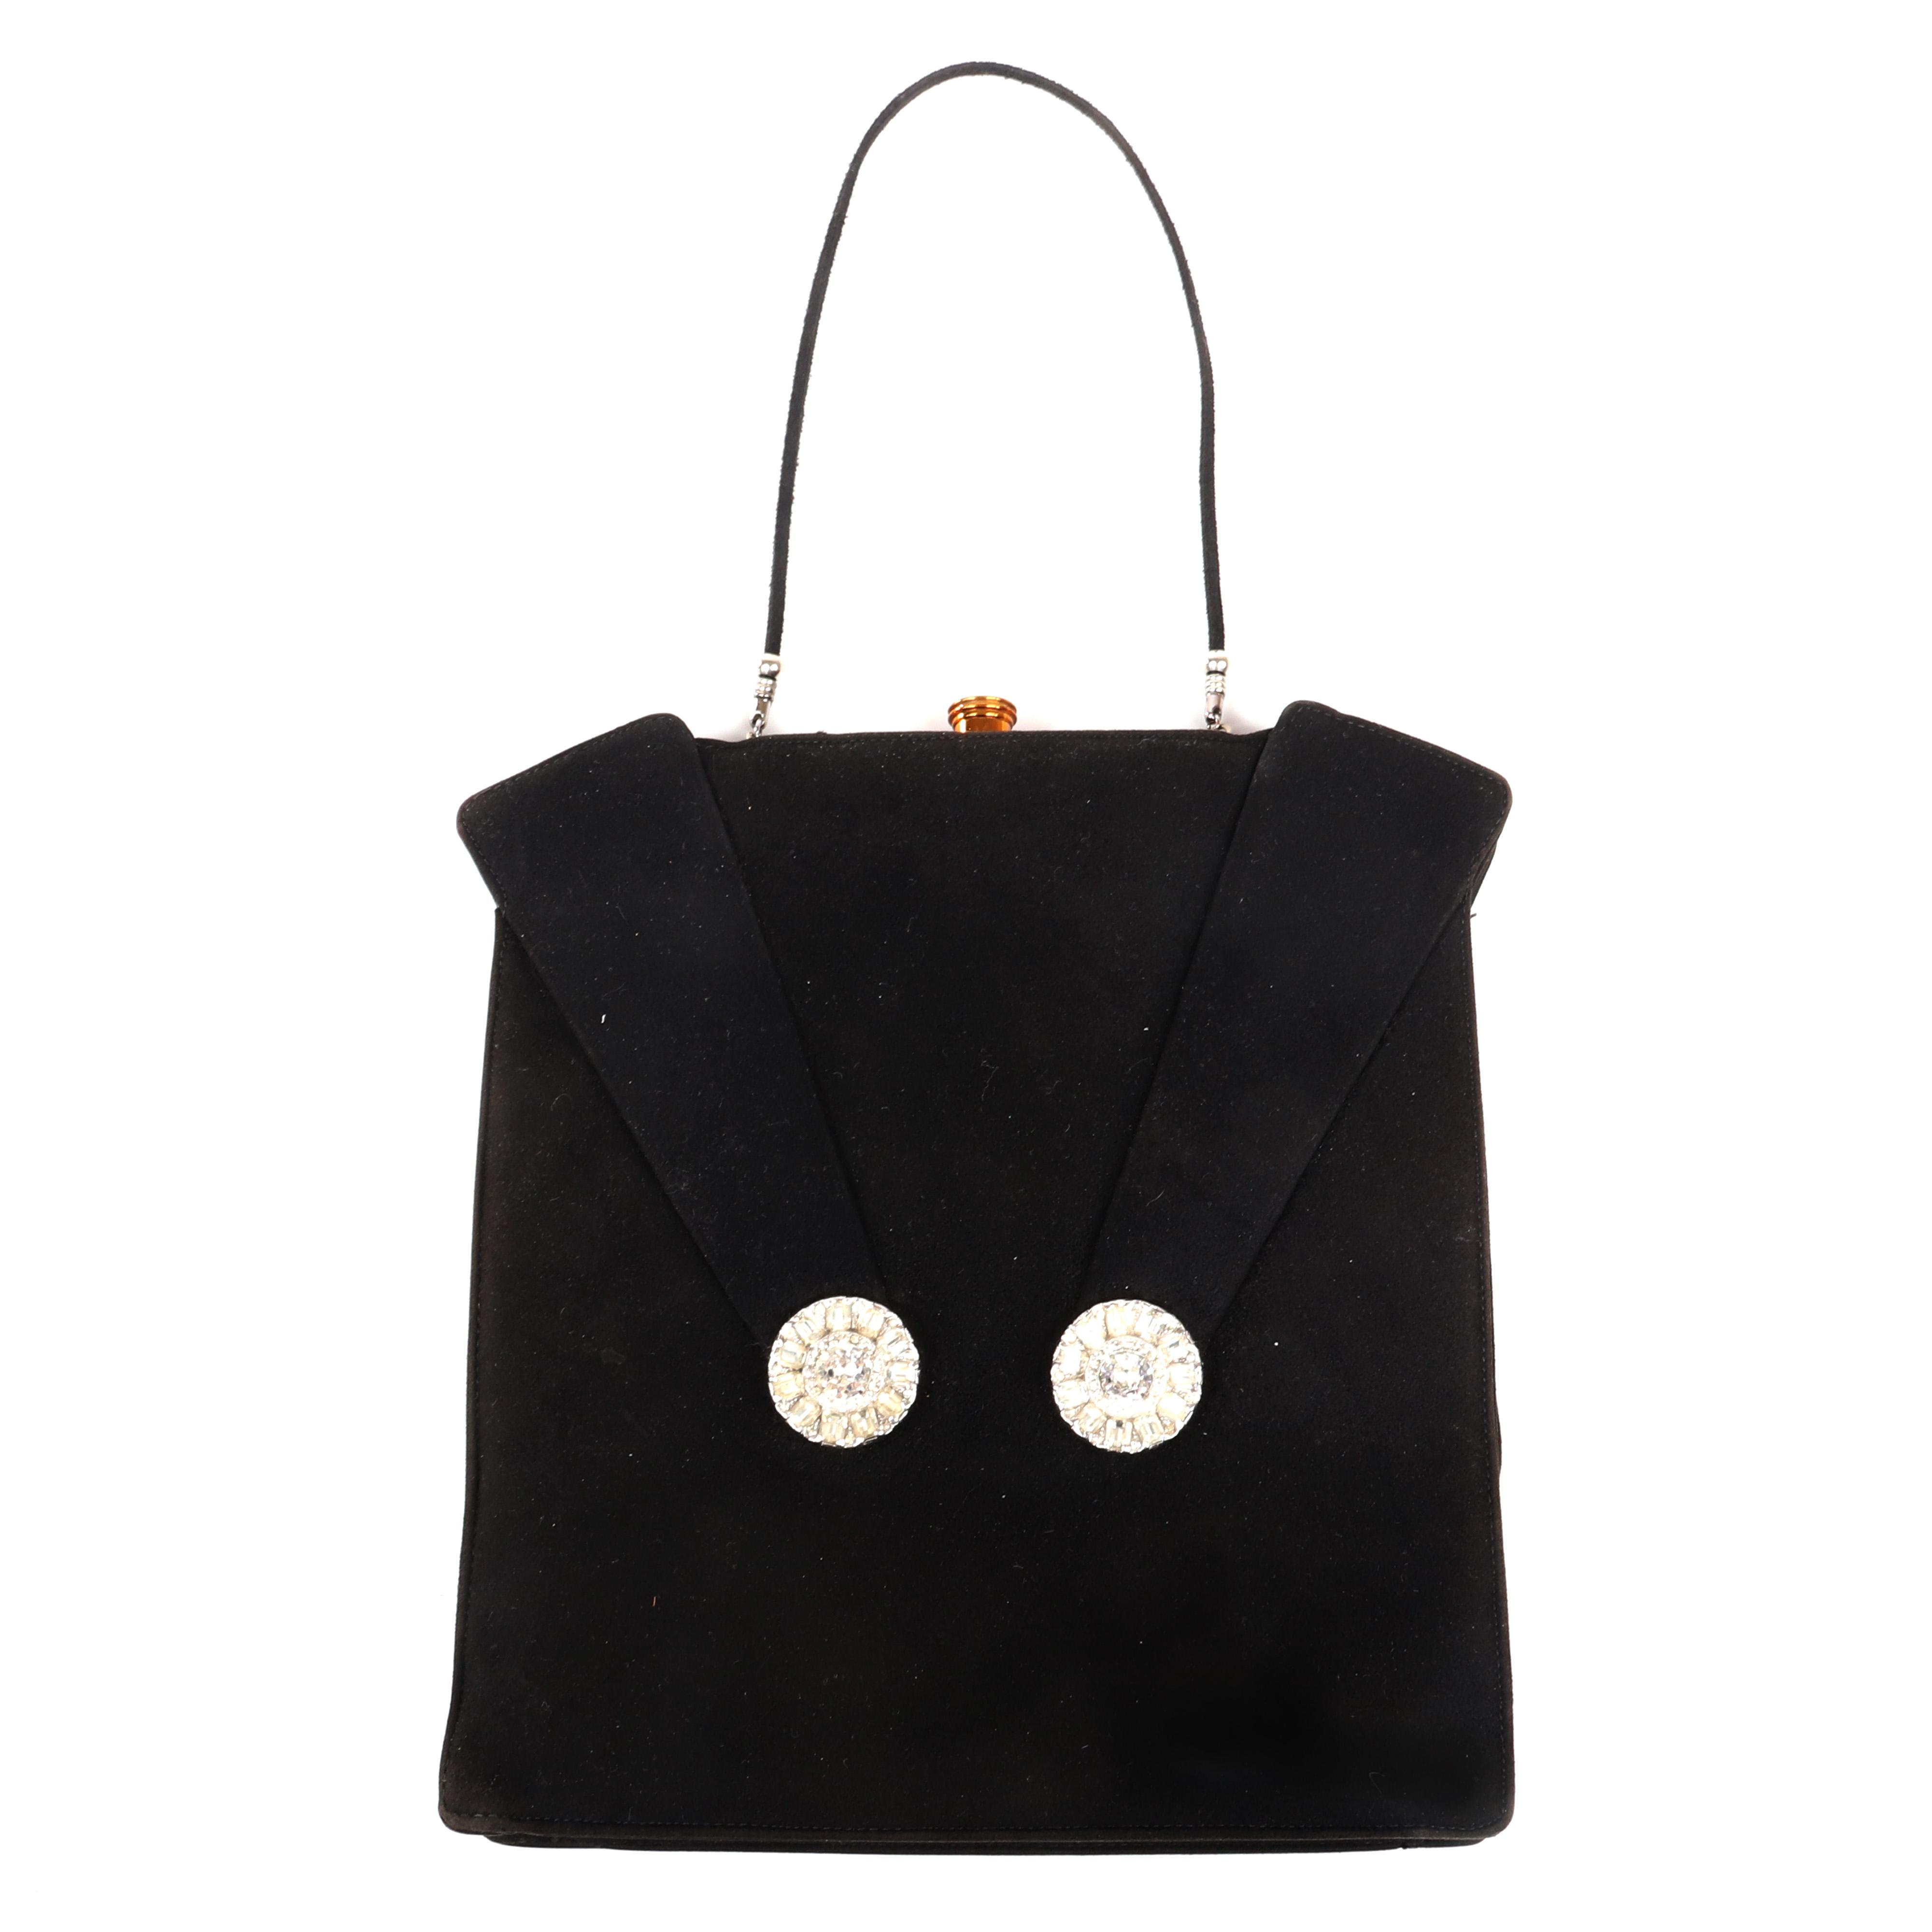 """Eisenberg Original Rare black suede handbag with decorative suede fold-over flaps held by two stunning rhinestone buttons, gold hardware and push button strap, c. 1950. 9 1/4"""" x 8 1/4"""""""